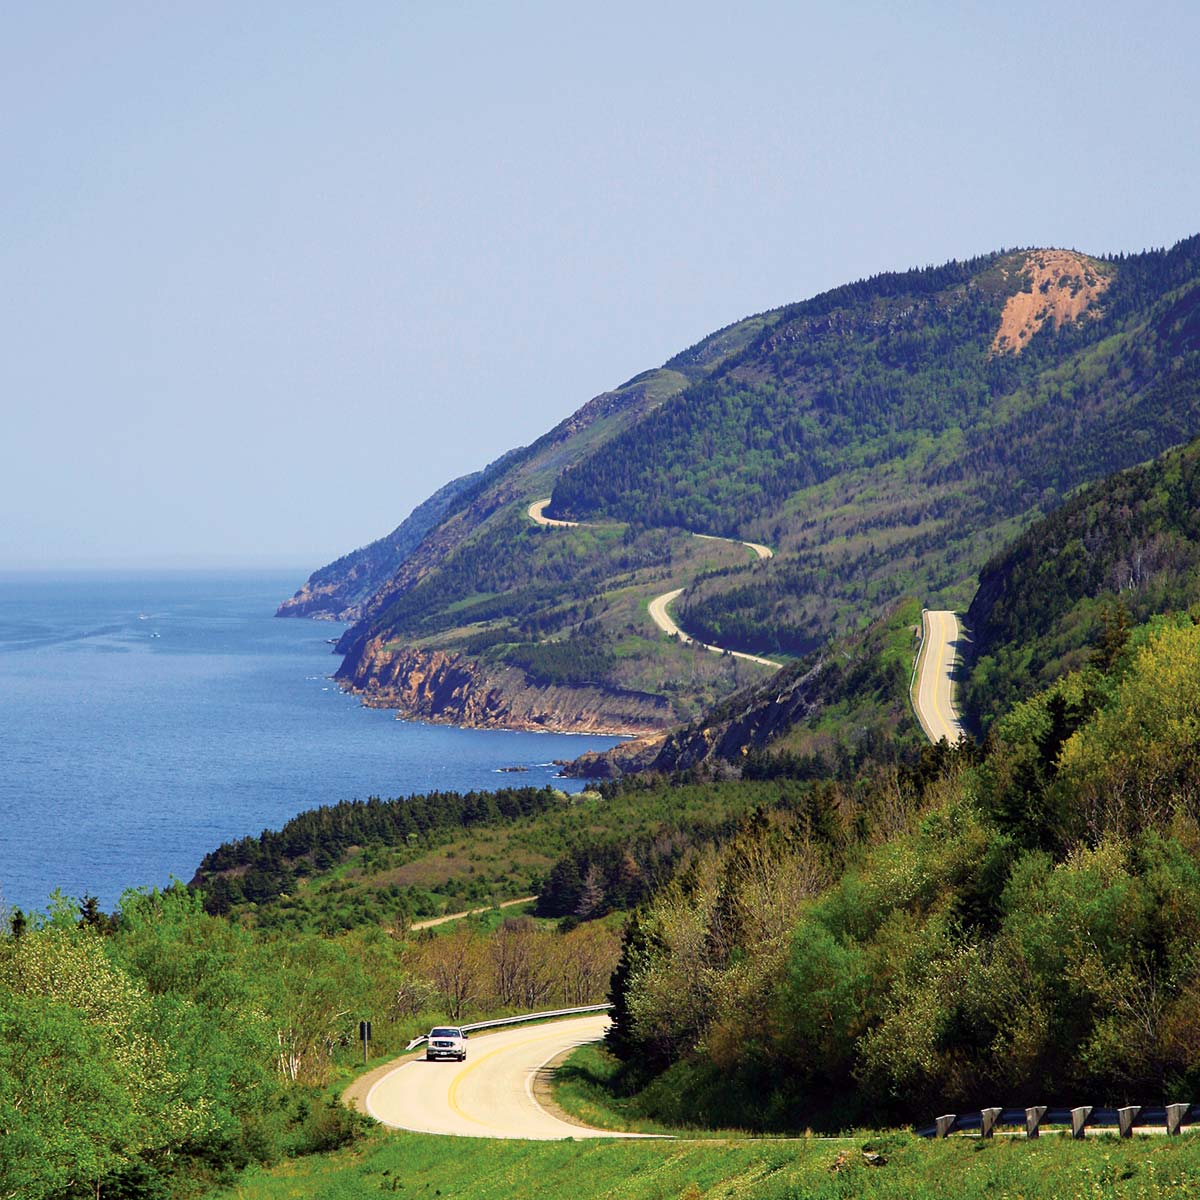 A car traverses the windy coastal Cabot Trail highway in Cape Breton Highlands National Park.